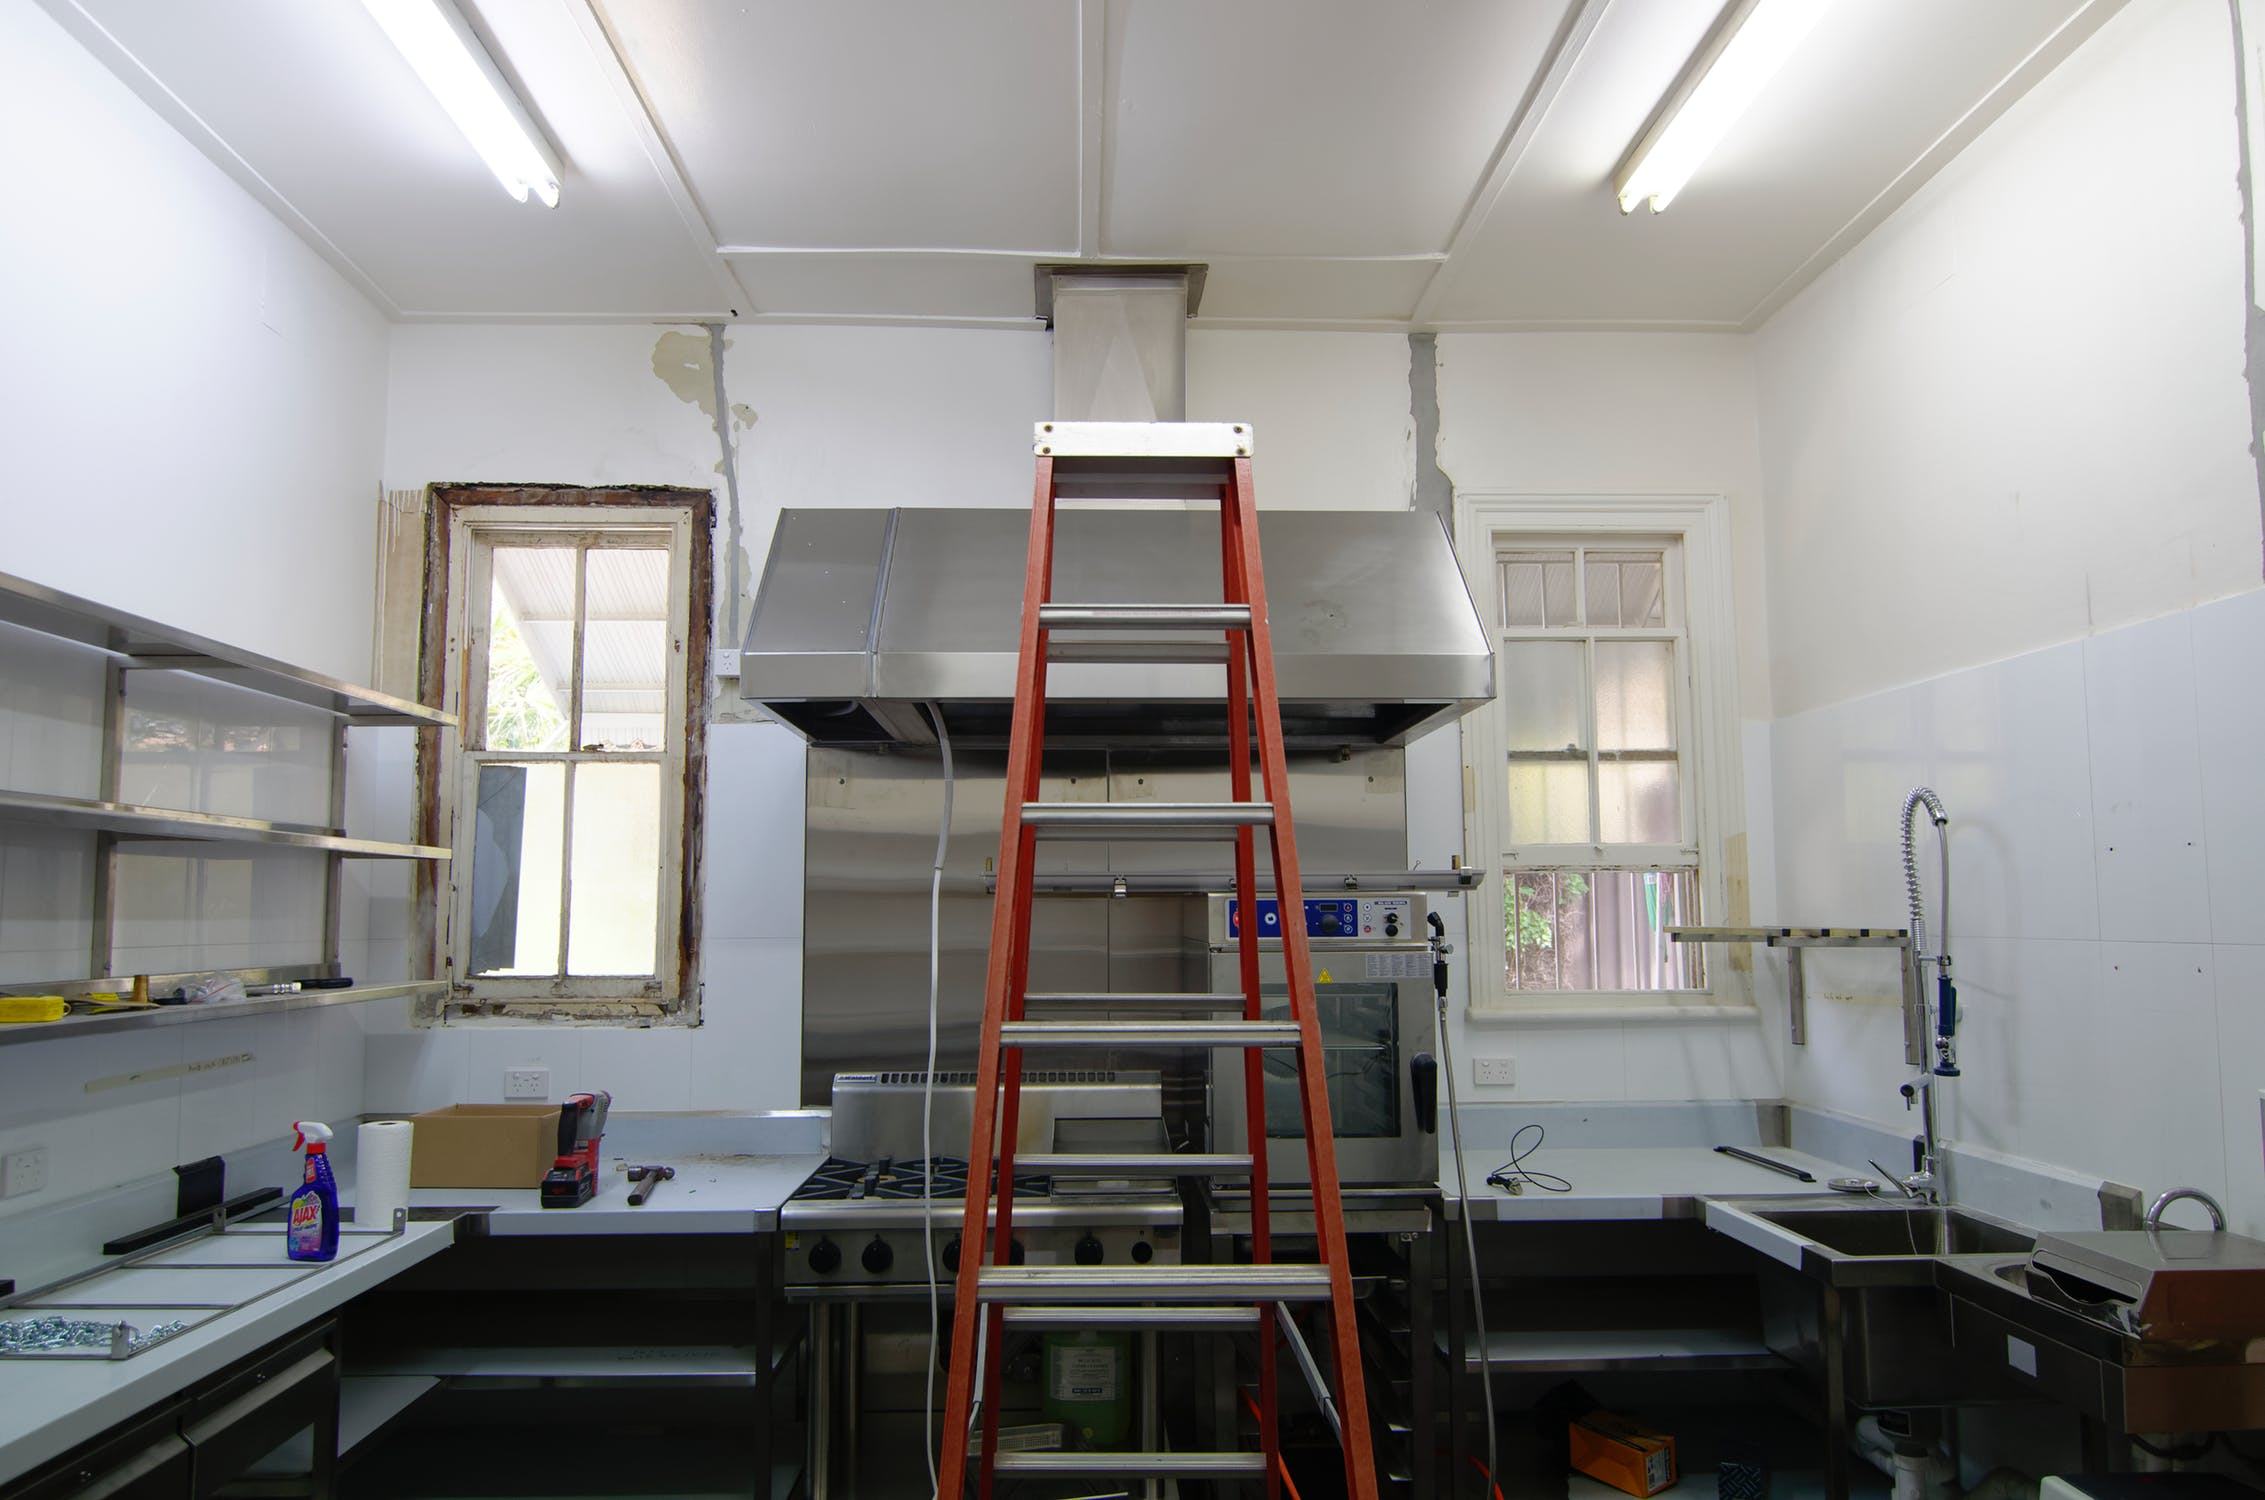 Kitchen Renovation: 5 Budgeting Tips for Your Next Remodel. Small kitchen under reconstruction